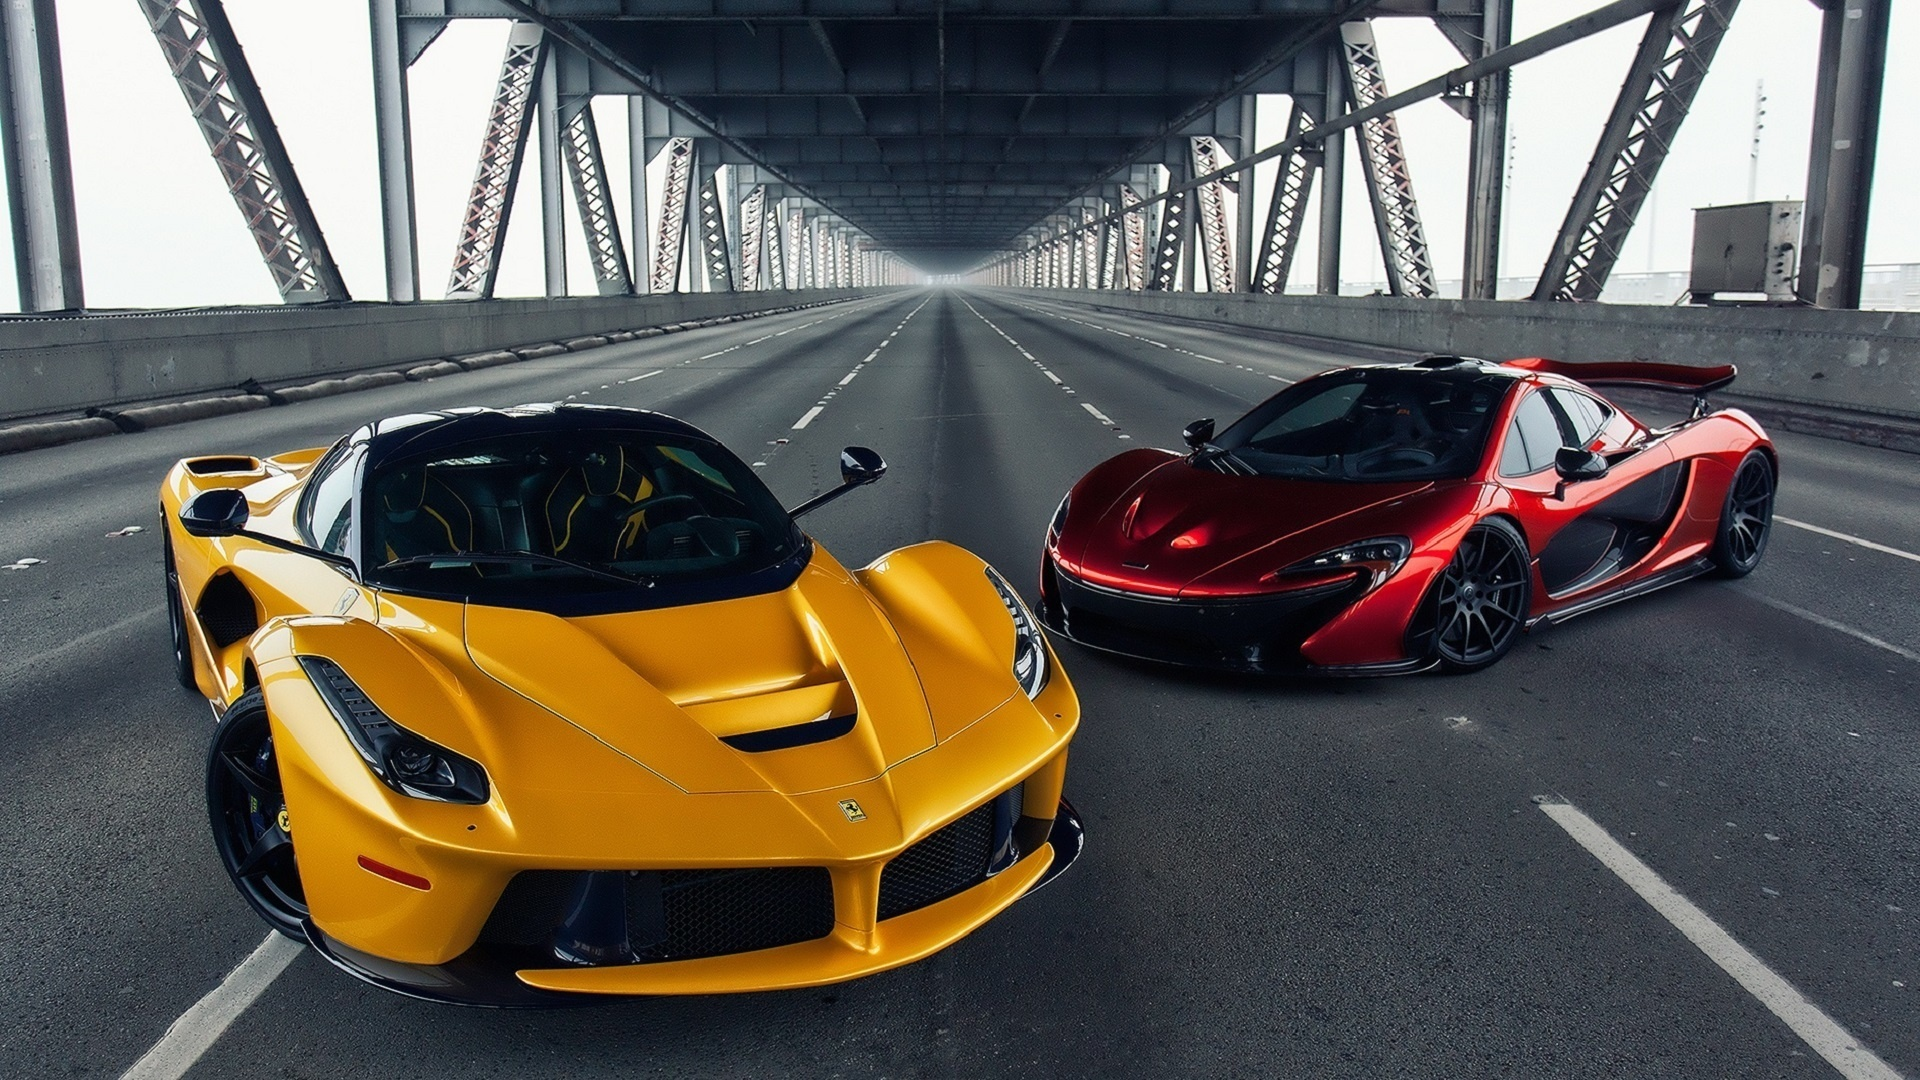 About Supercars Net